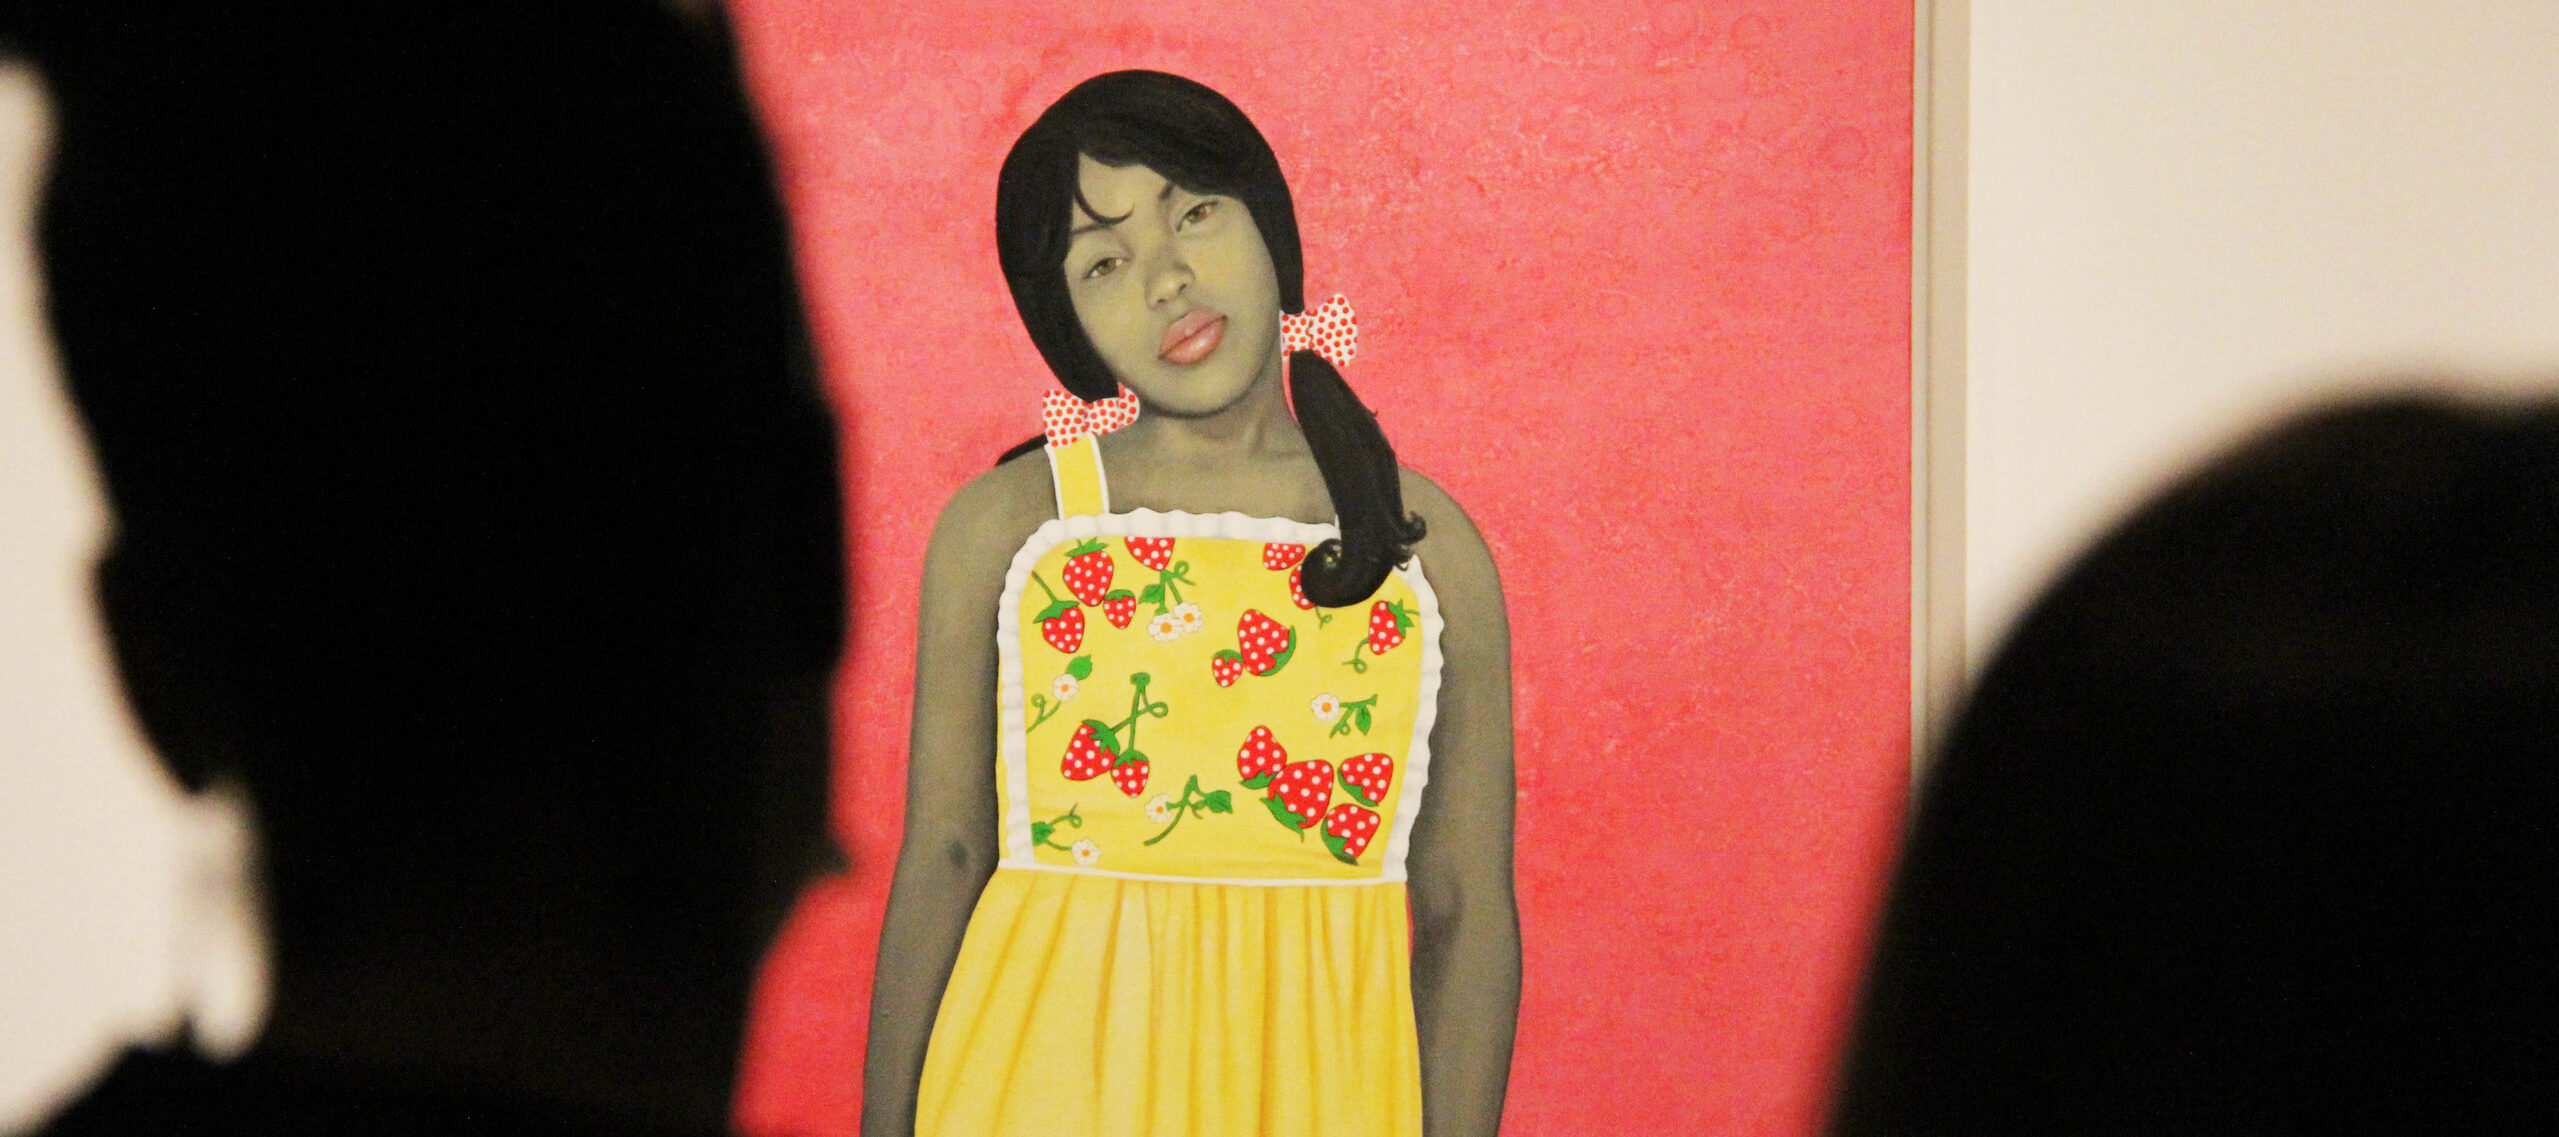 Vibrant painting of a young lady with medium skin tone staring out against a bright pink background. The painting is partially obscured by the silhouetted heads of museum visitors.